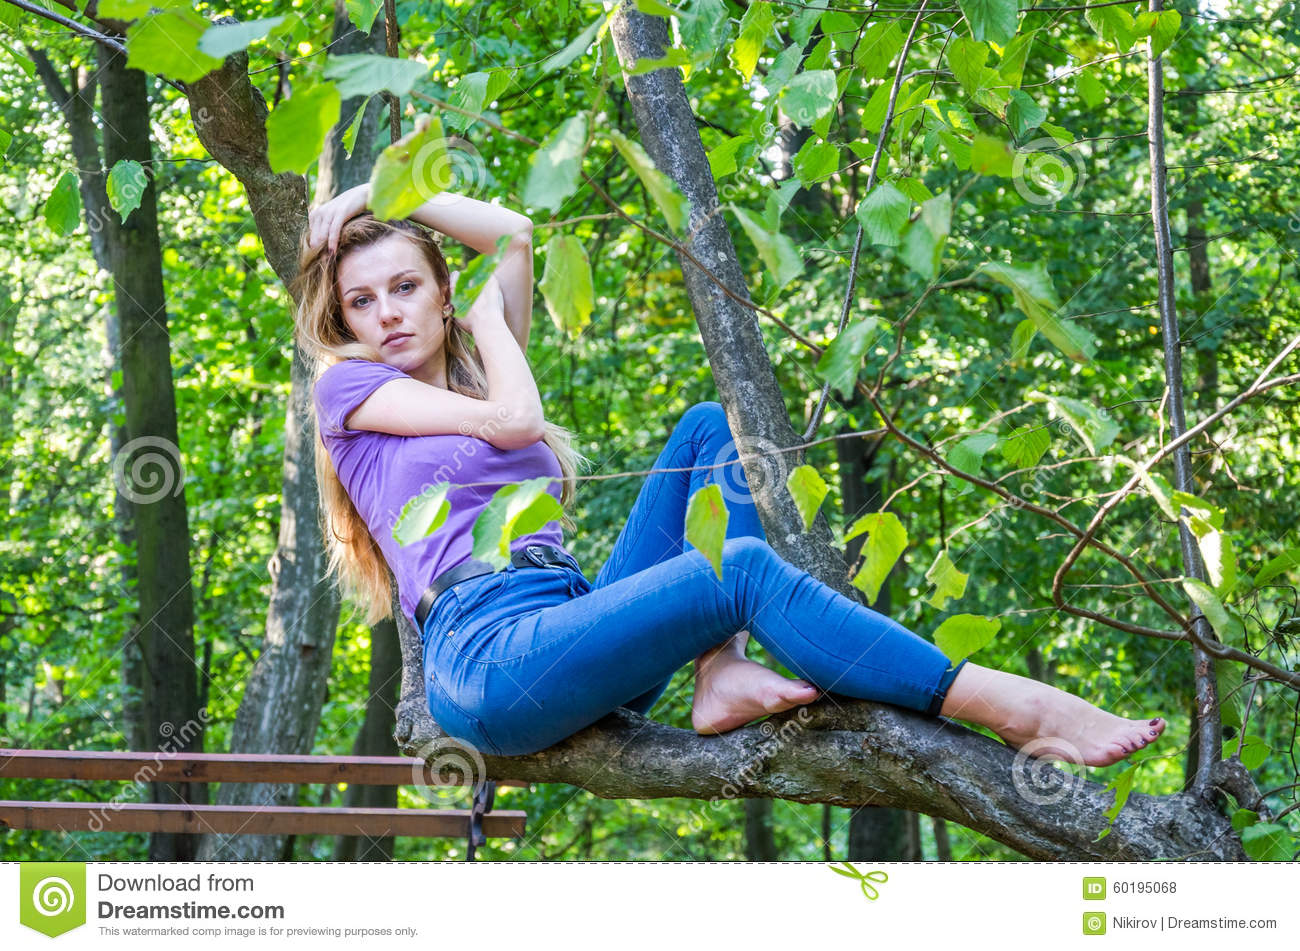 https://thumbs.dreamstime.com/z/young-beautiful-sexy-girl-model-european-appearance-long-hair-shirt-jeans-sitting-tree-walk-60195068.jpg